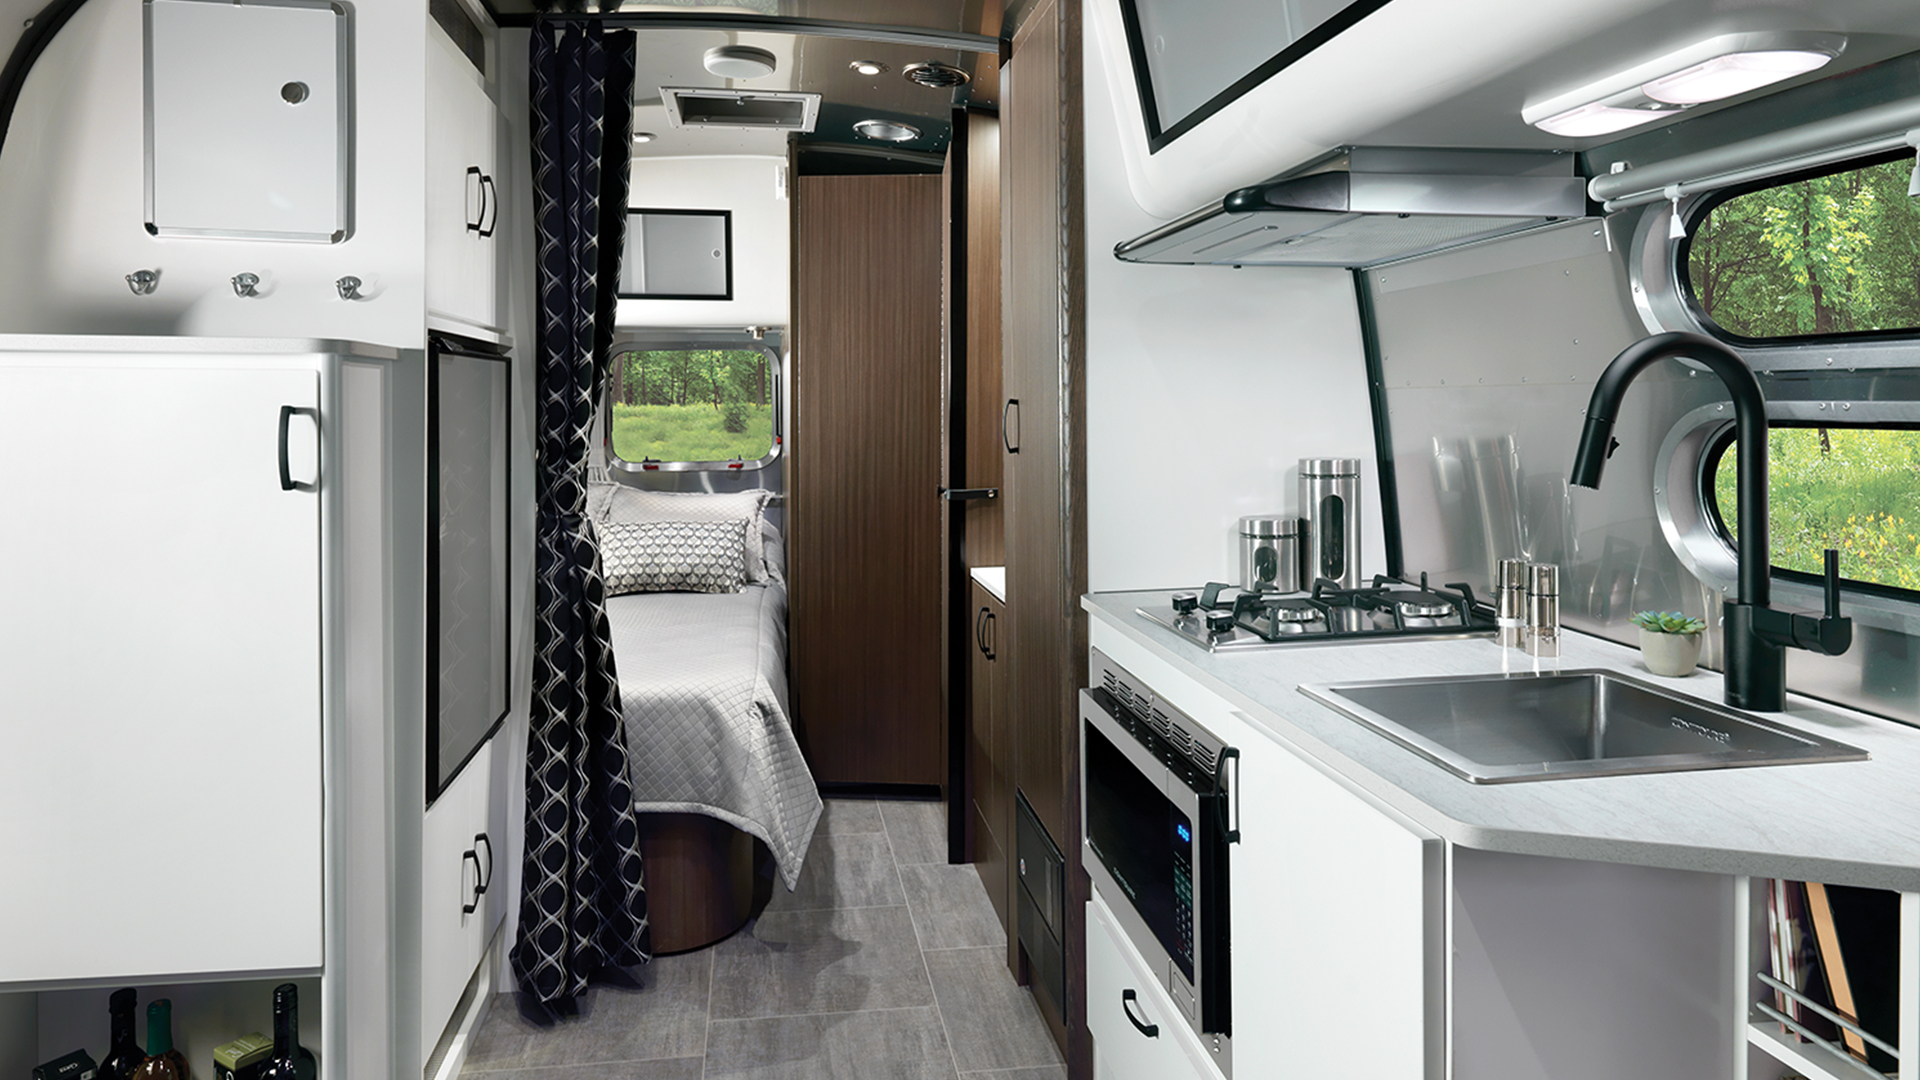 Gallery Caravel Travel Trailers Airstream Interior And Exterior Pictures